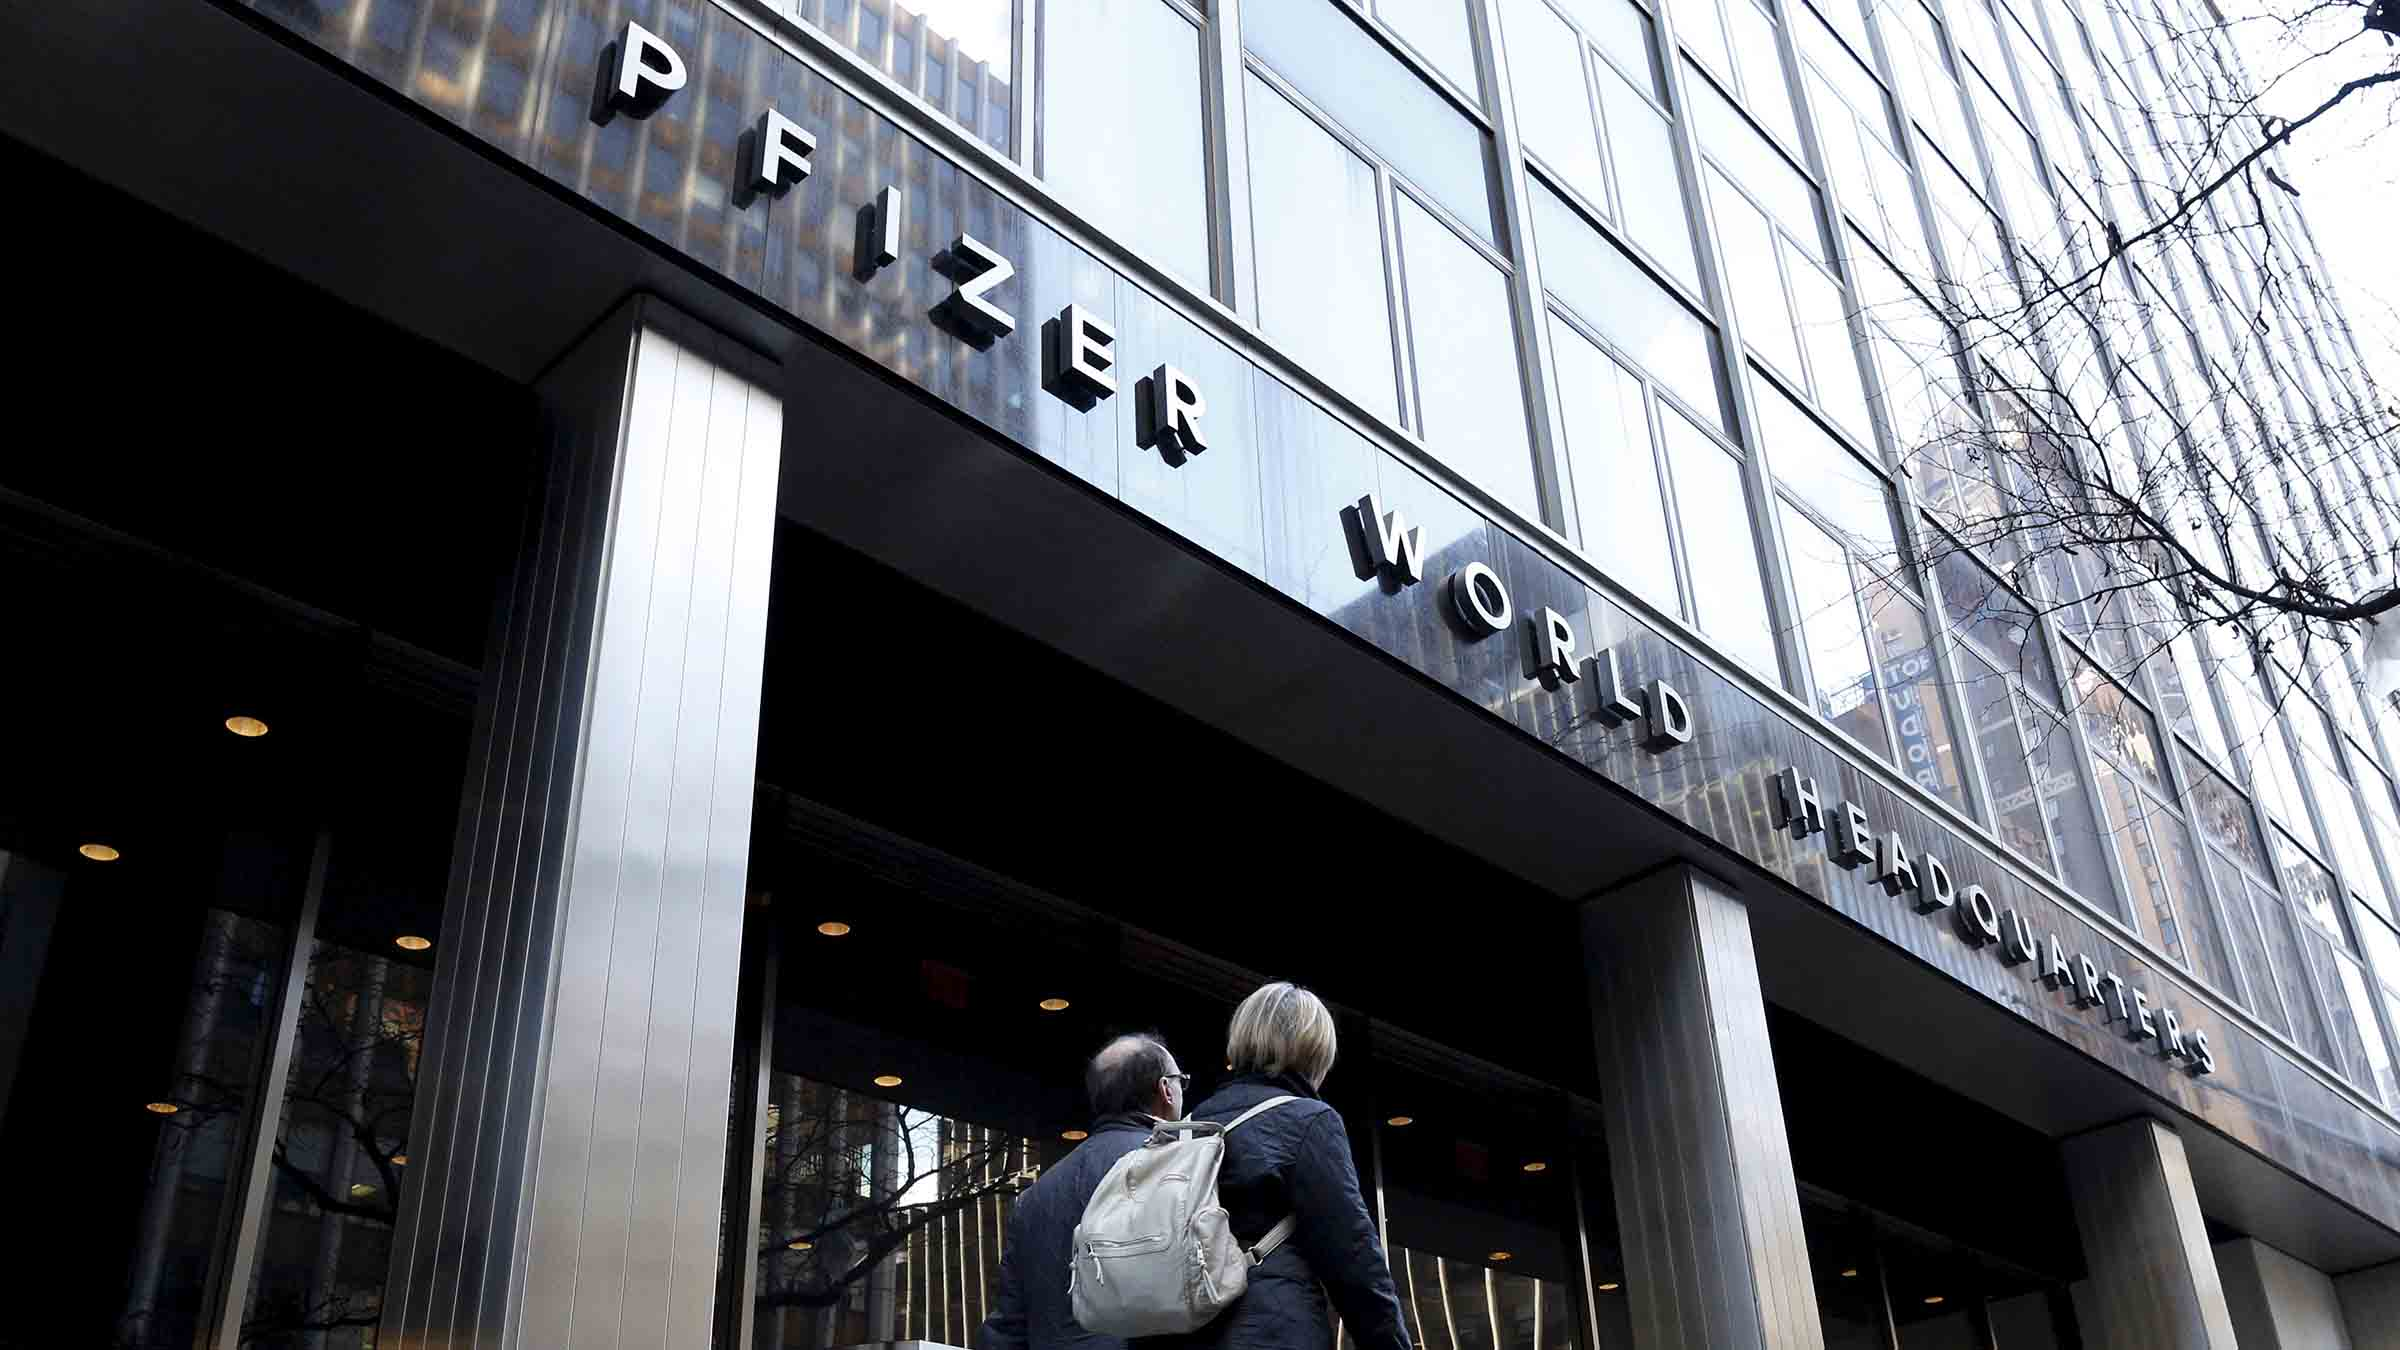 People pass by the Pfizer World Headquarters building in New York